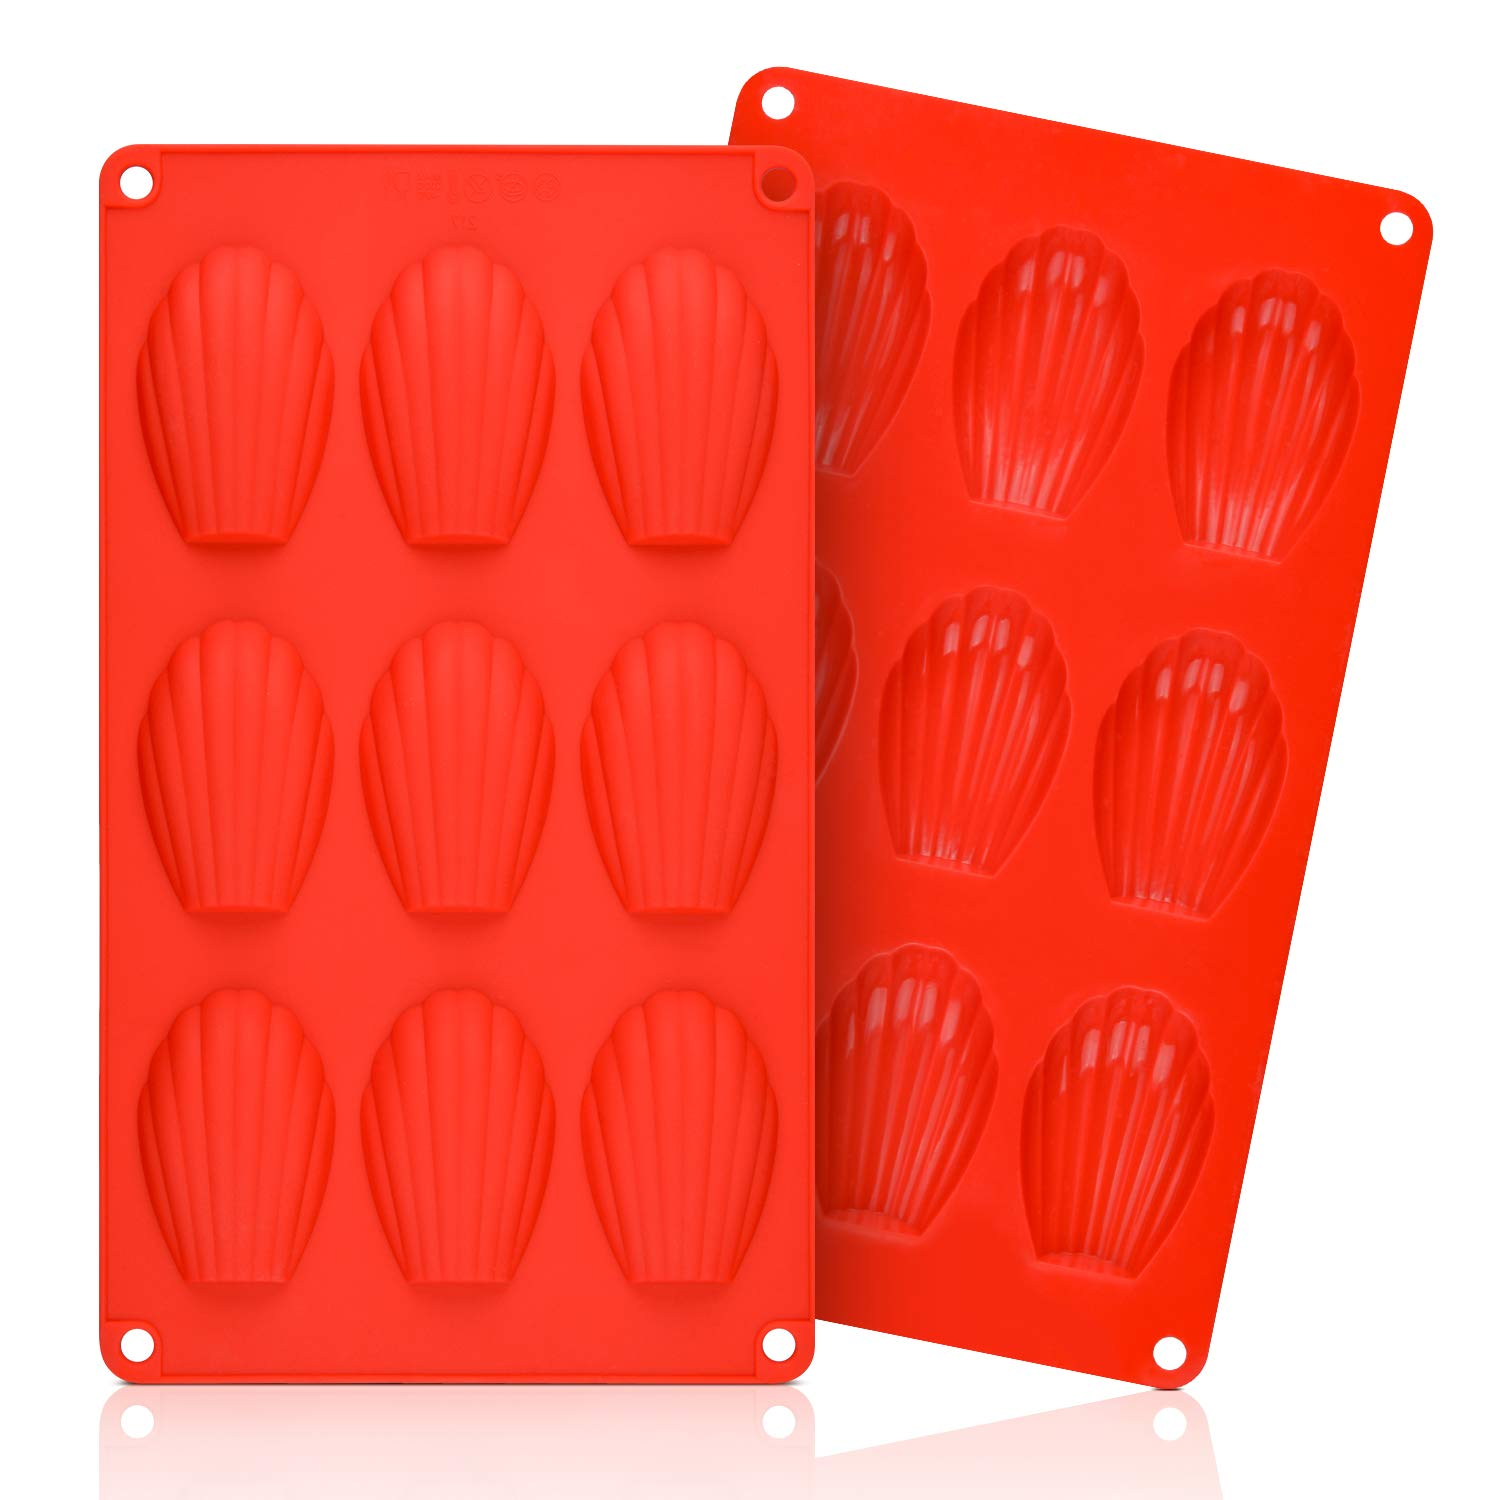 Silicone Madeleine Pans - 9 Cups Madeleine Mold for Small Cake, Chocolate, Cookies Pack of 2 by CAKETIME